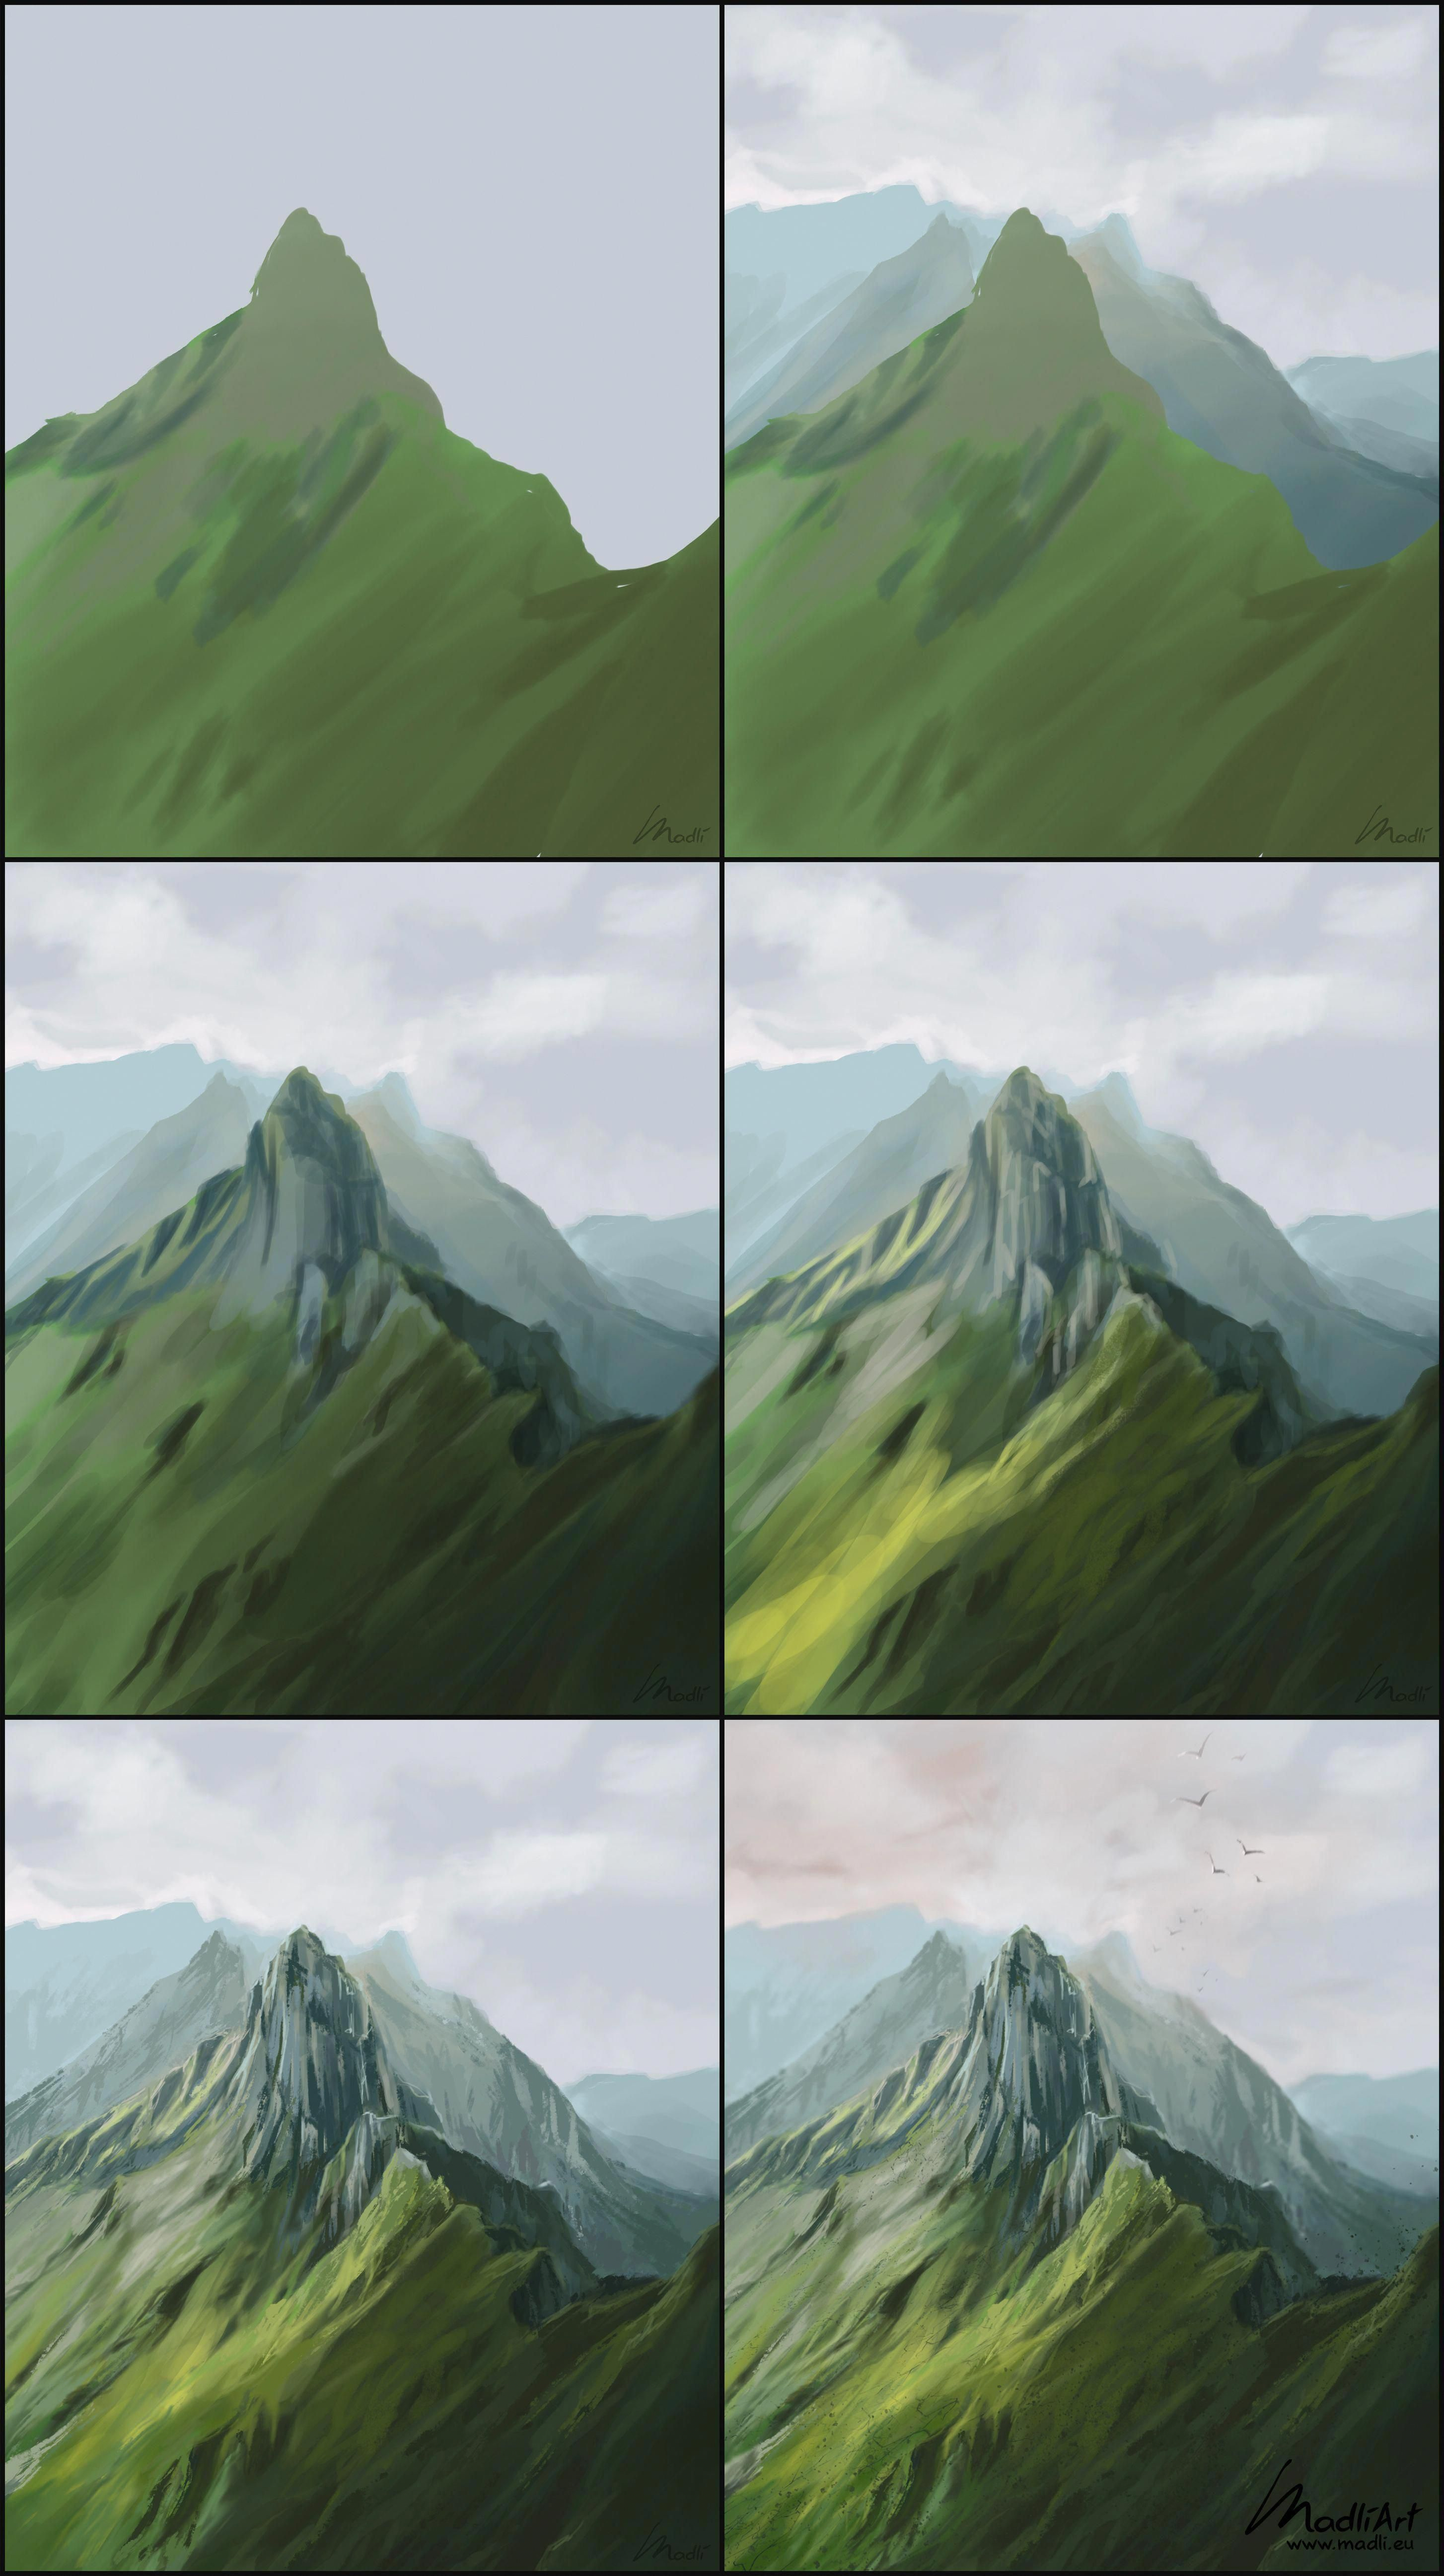 How To Paint Green Mountain Summit Scene Digital Painting Of Mountains In Switzerland B In 2020 Digital Art Beginner Concept Art Tutorial Landscape Paintings Acrylic